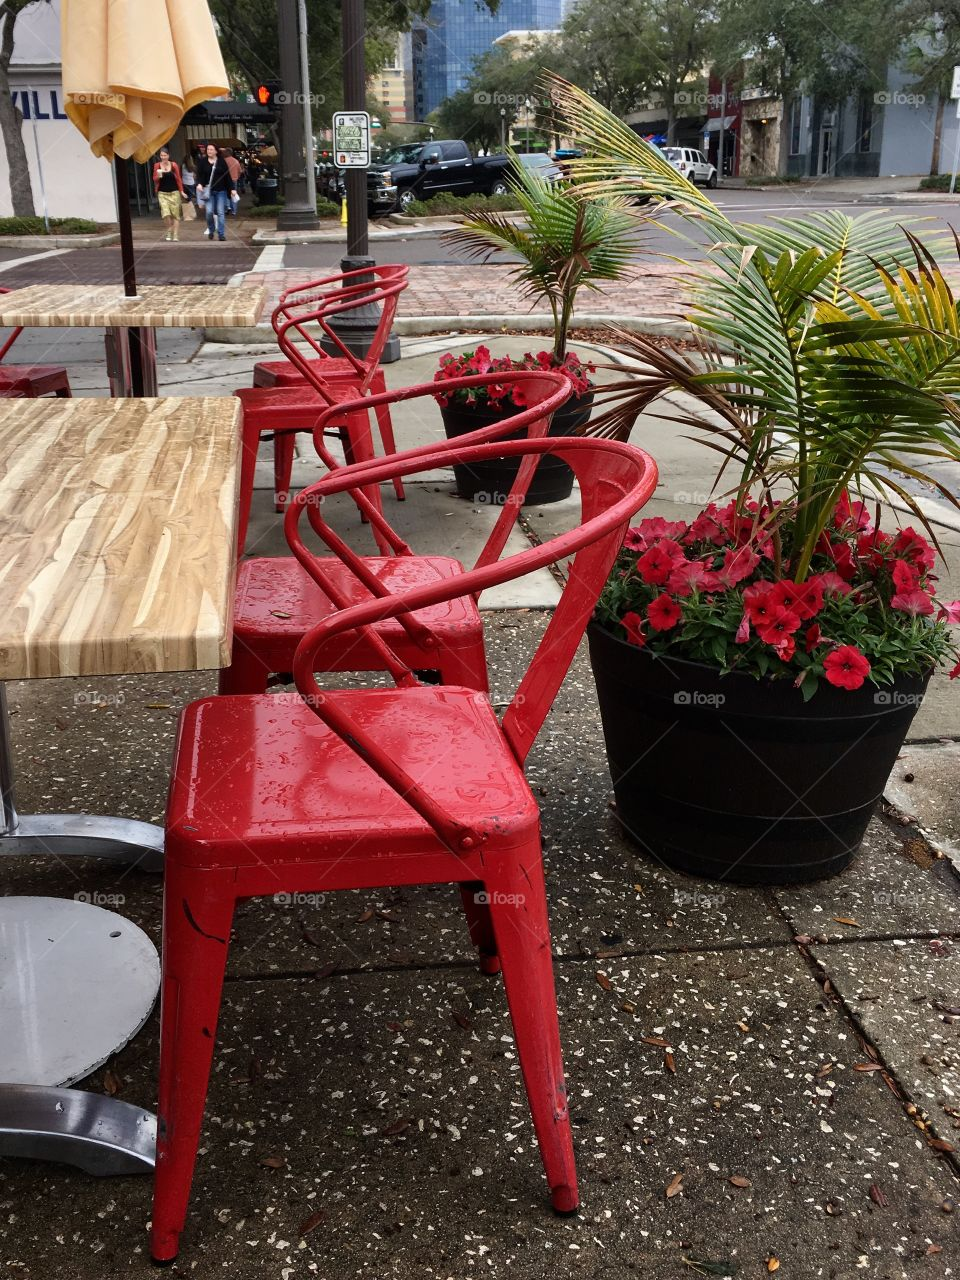 Sidewalk cafe with red chairs